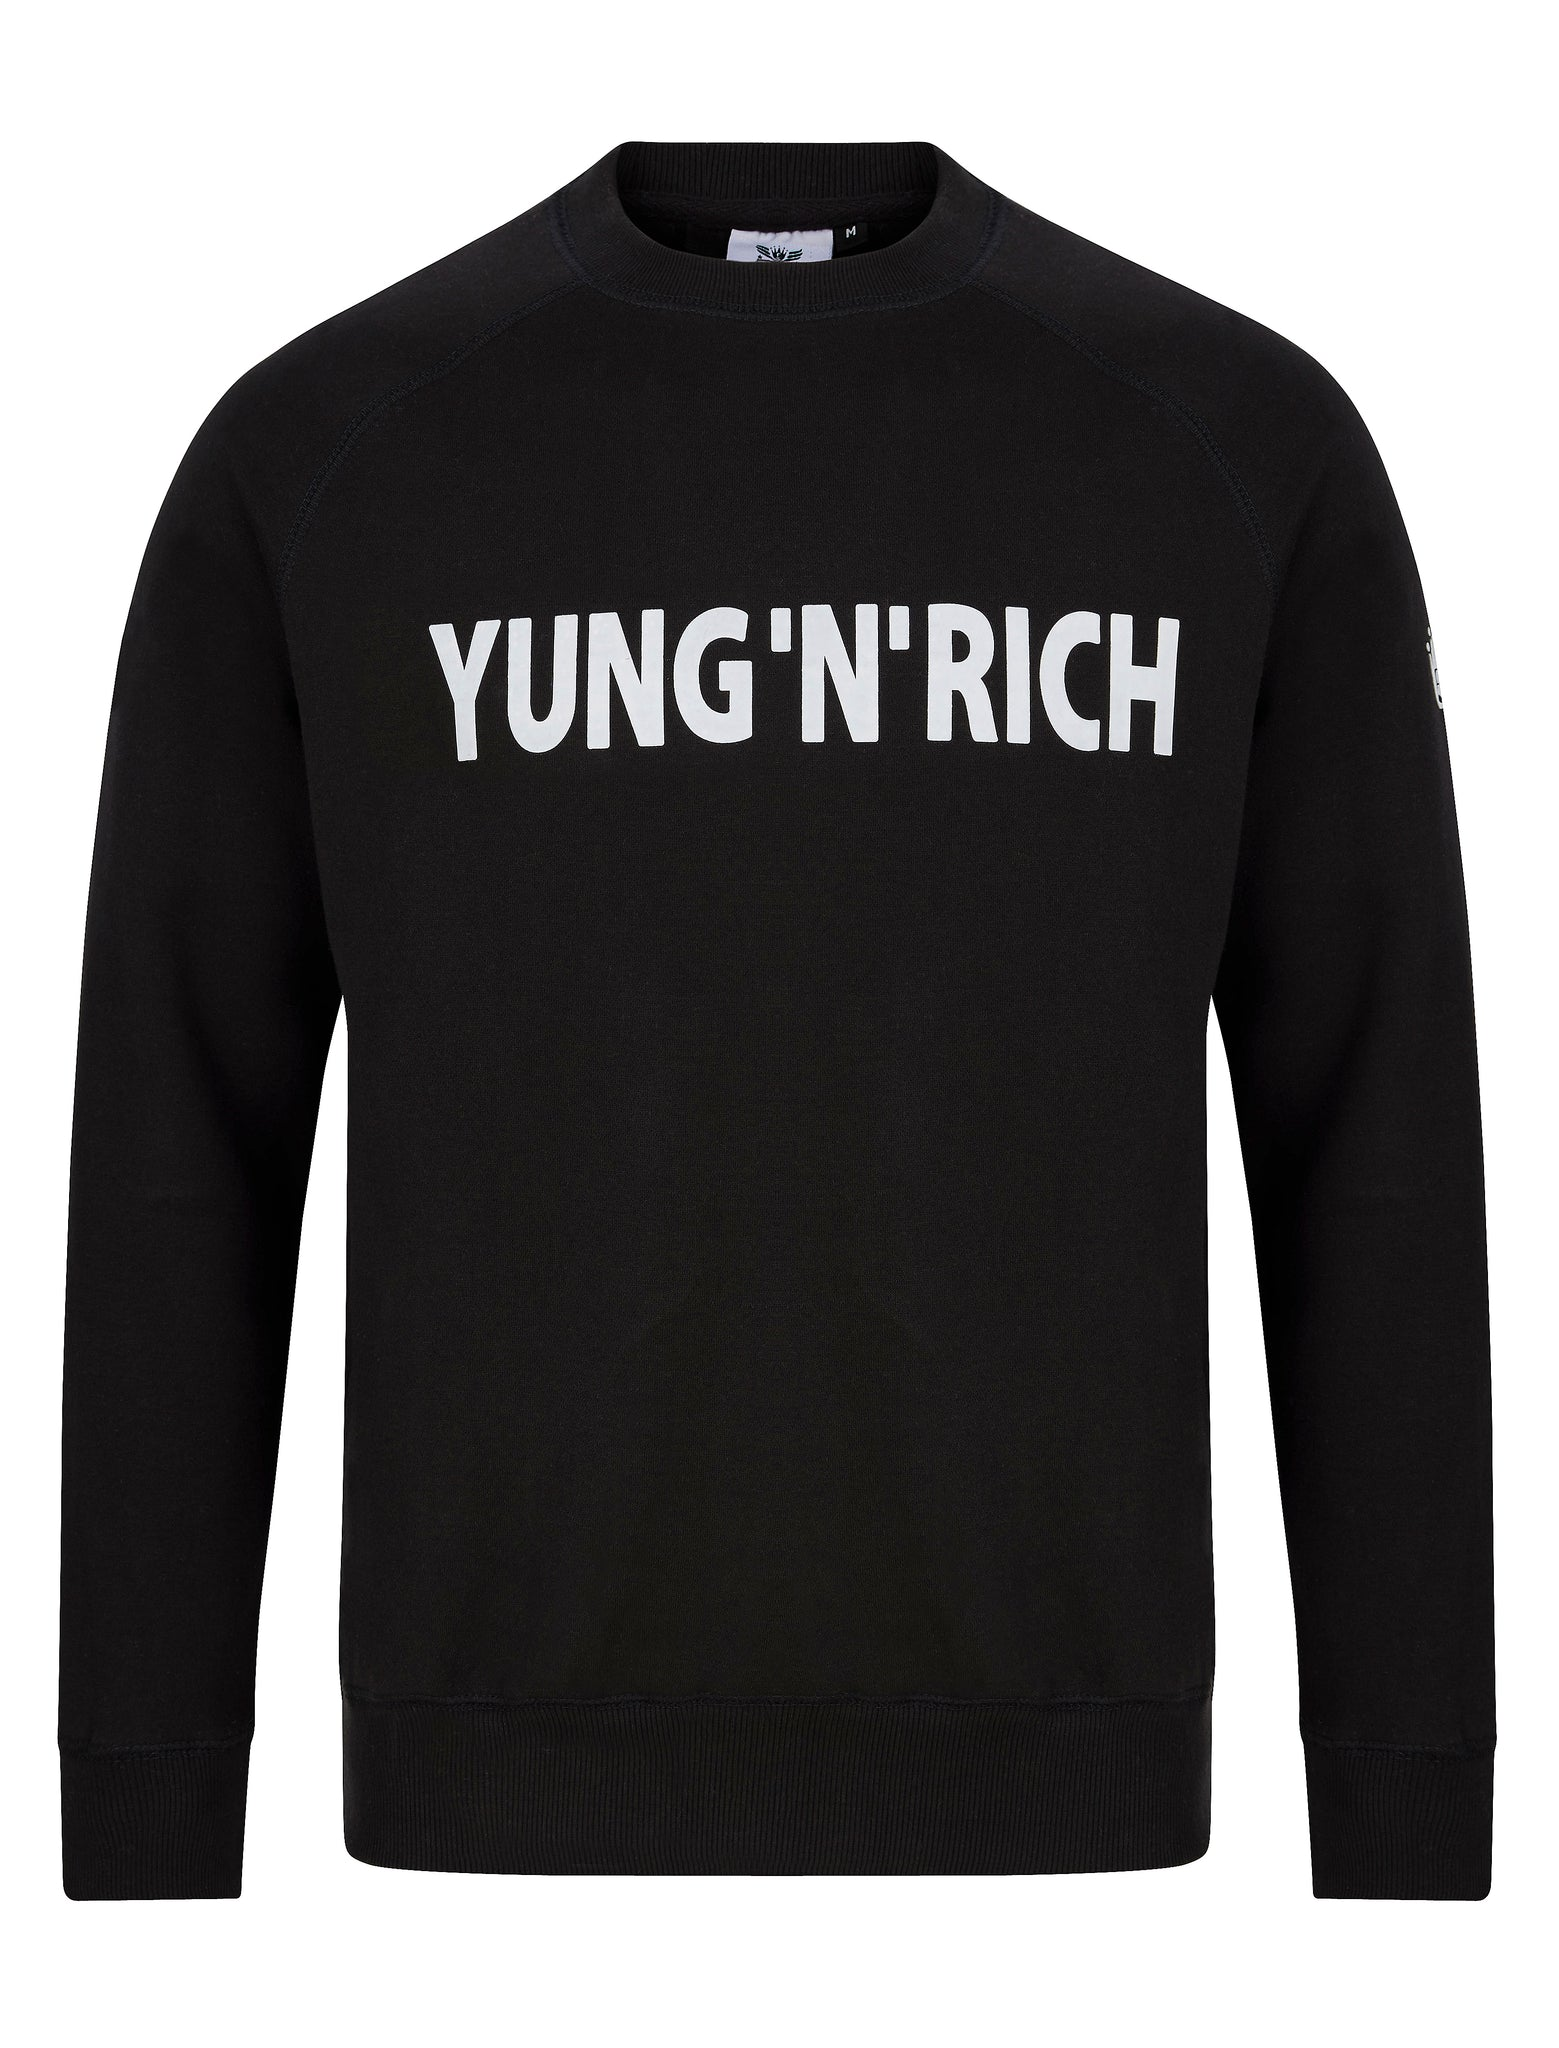 Yung'n'Rich Black Jumper Sweater White Wording Apparel & Accessories > Clothing >  jumper > sweater